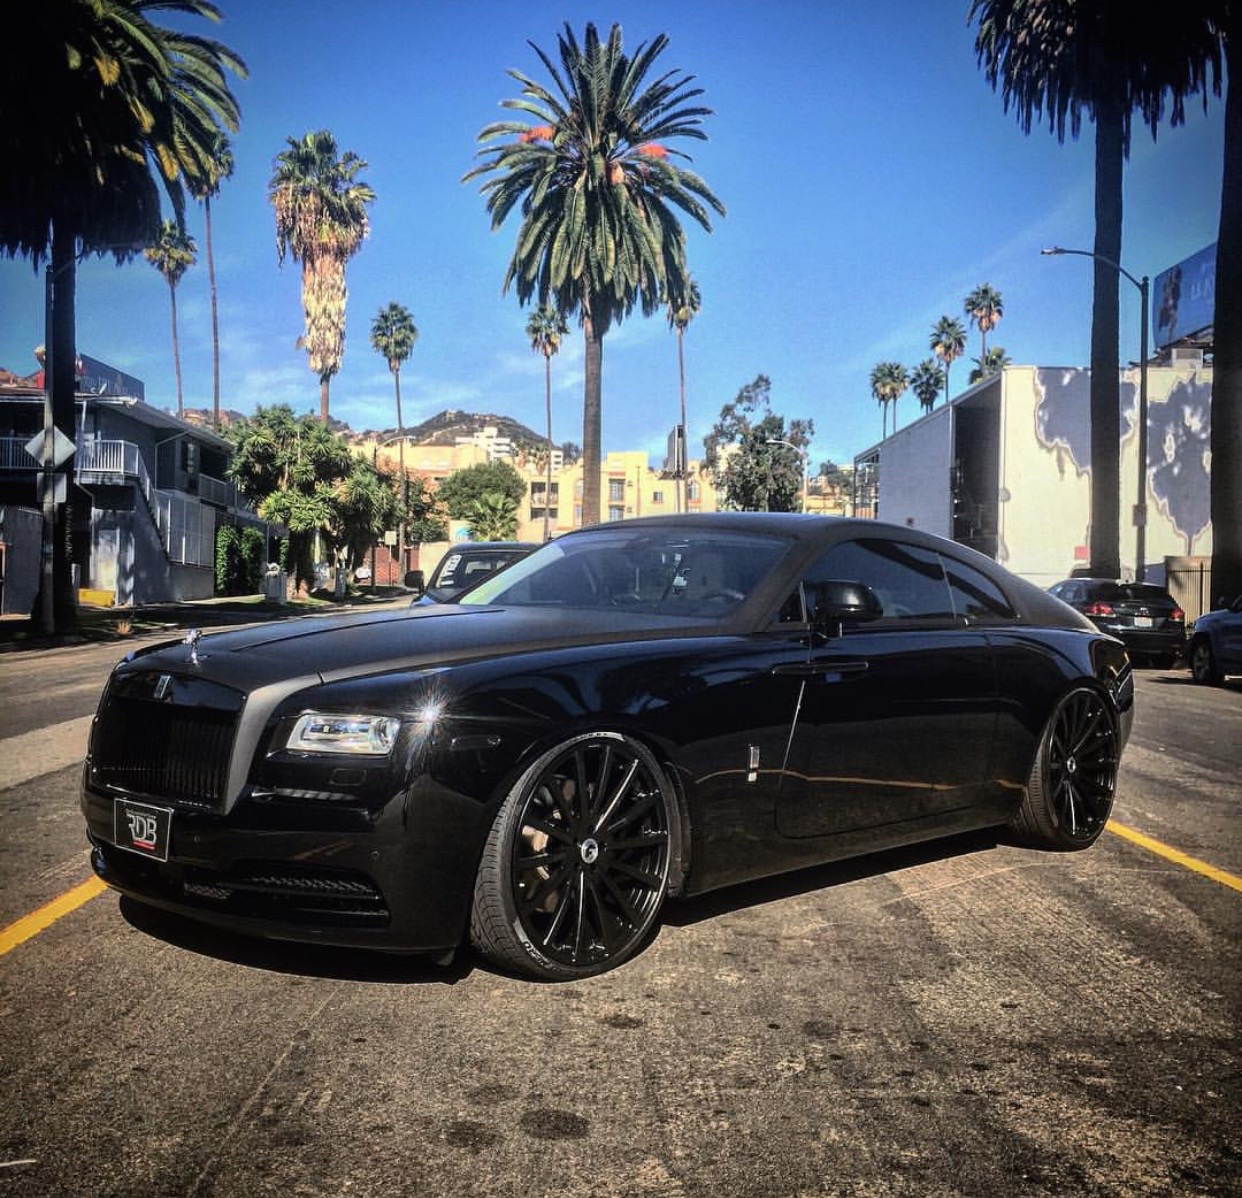 rdbla really know how to make a rolls royce really look good  what do you think